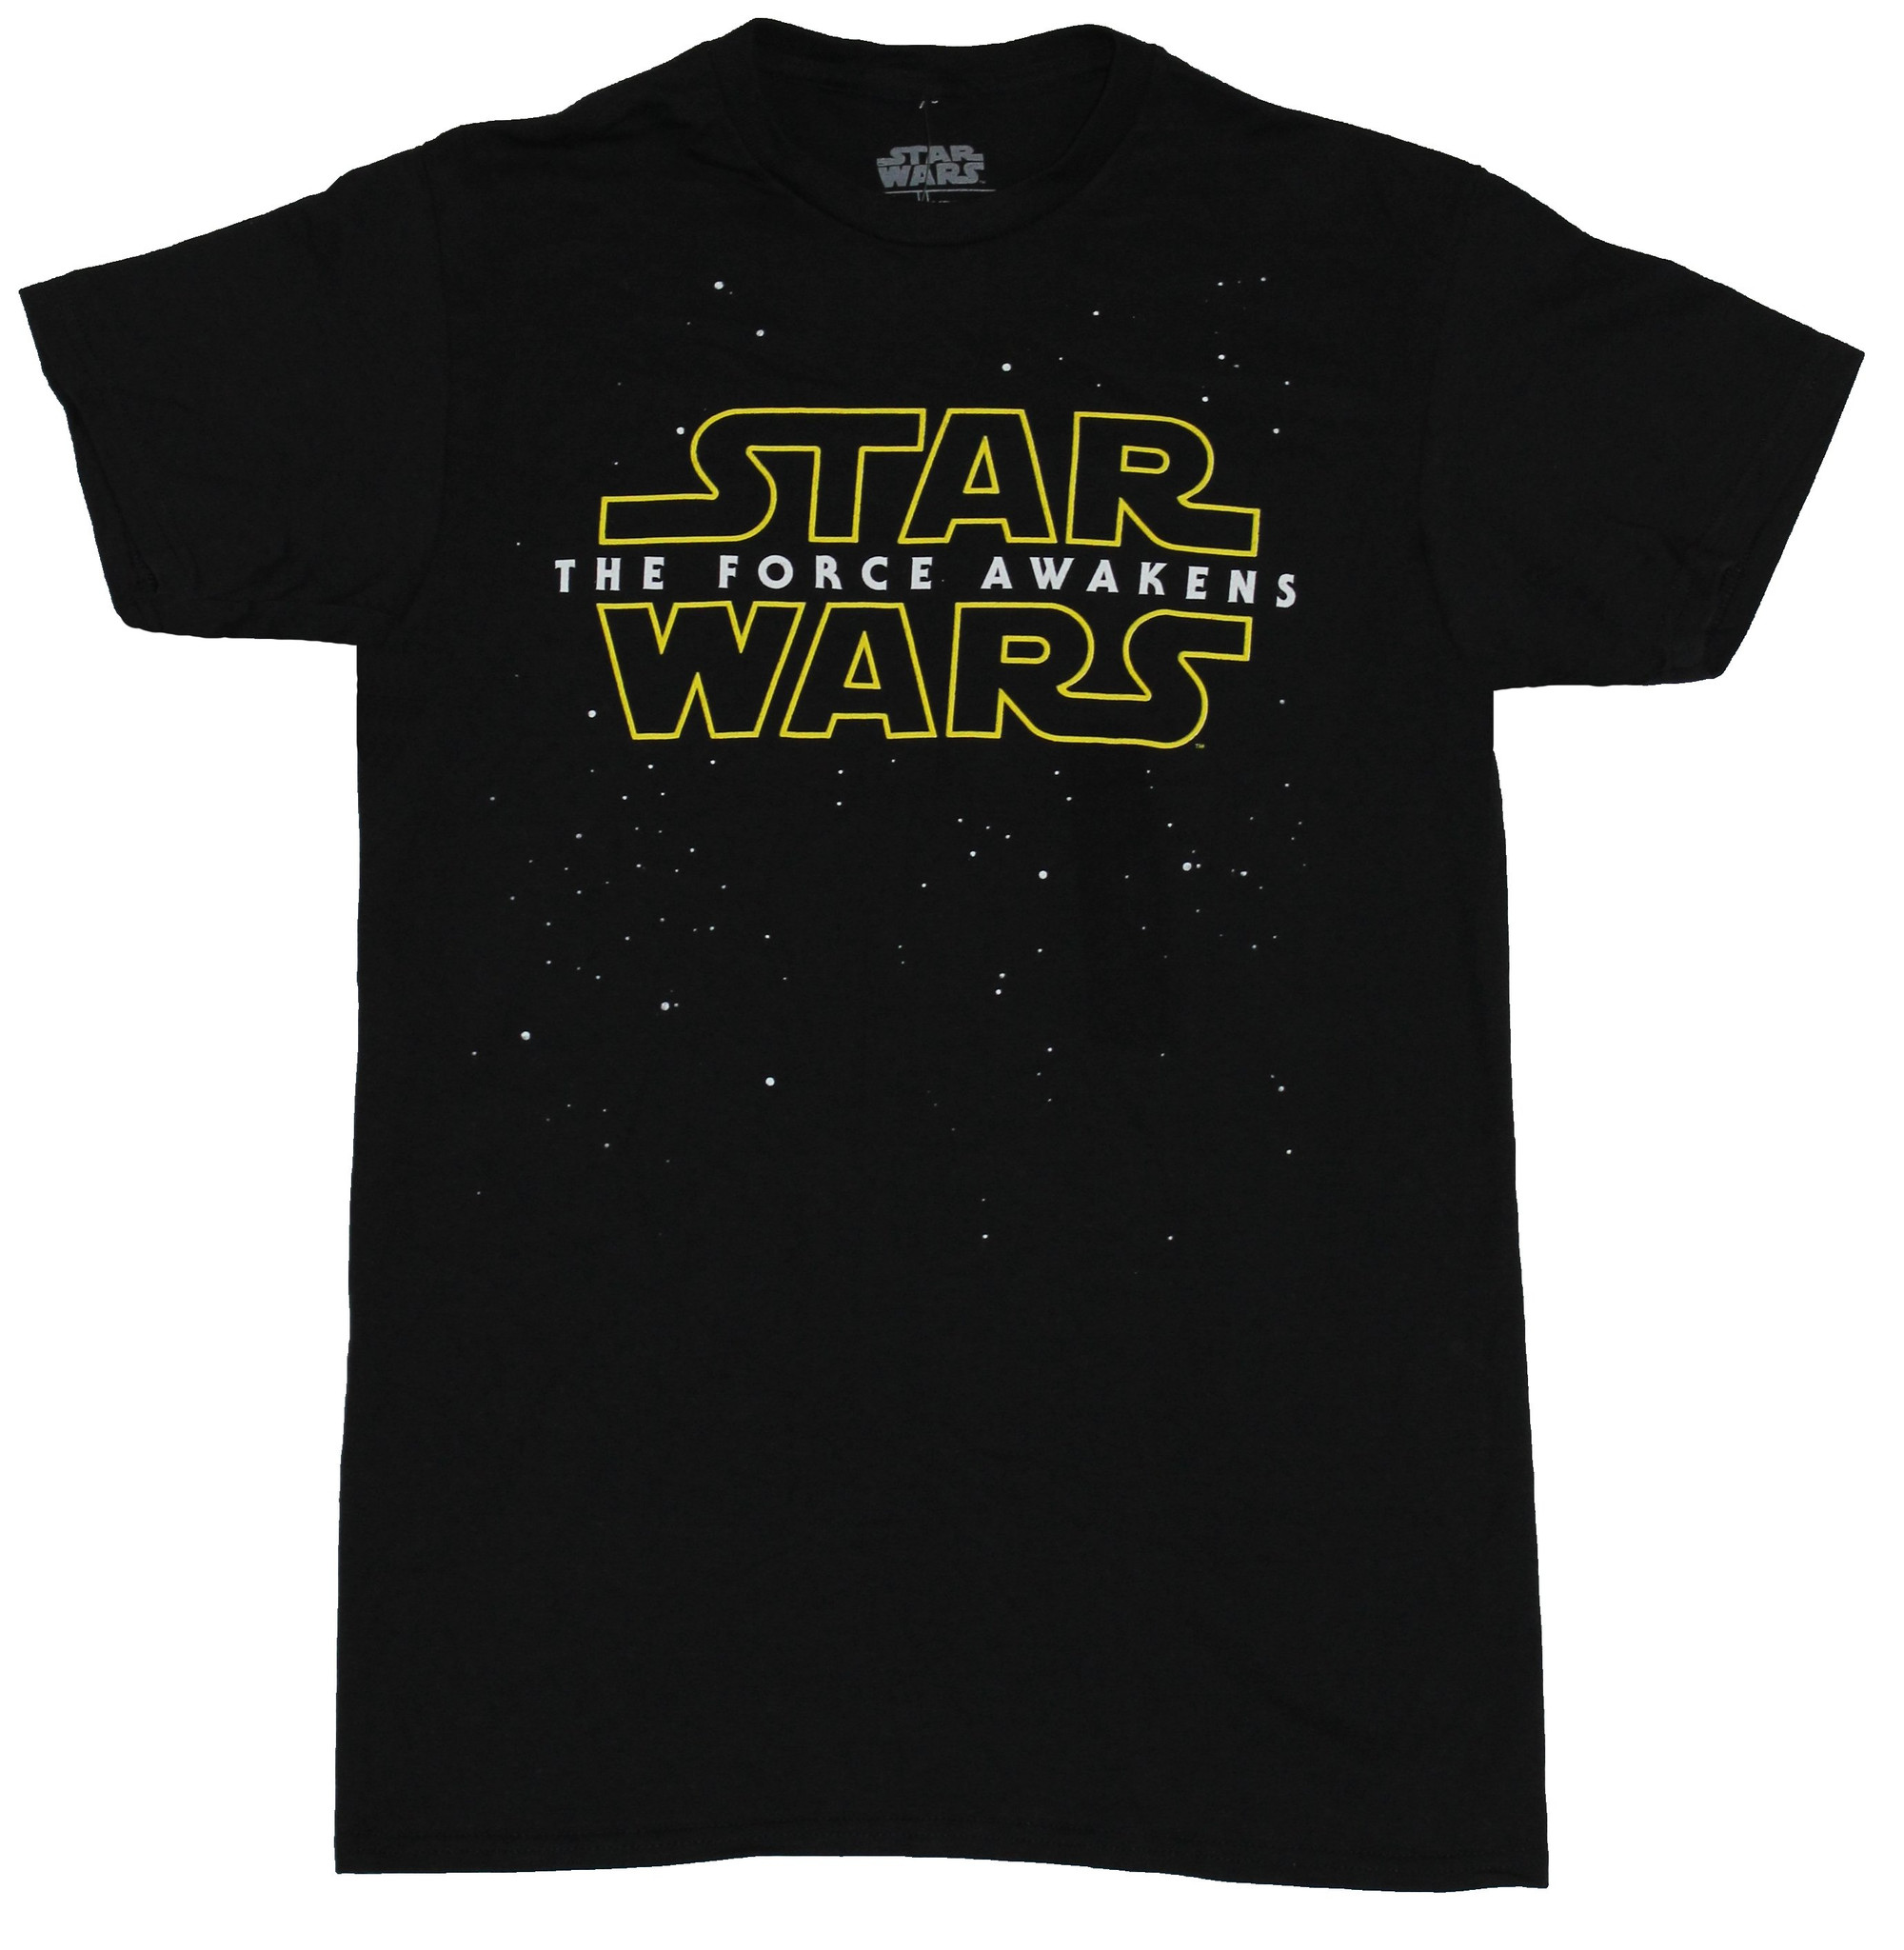 Star Wars Force Awakens Mens T-Shirt - Simple Yellow Lined Logo Image